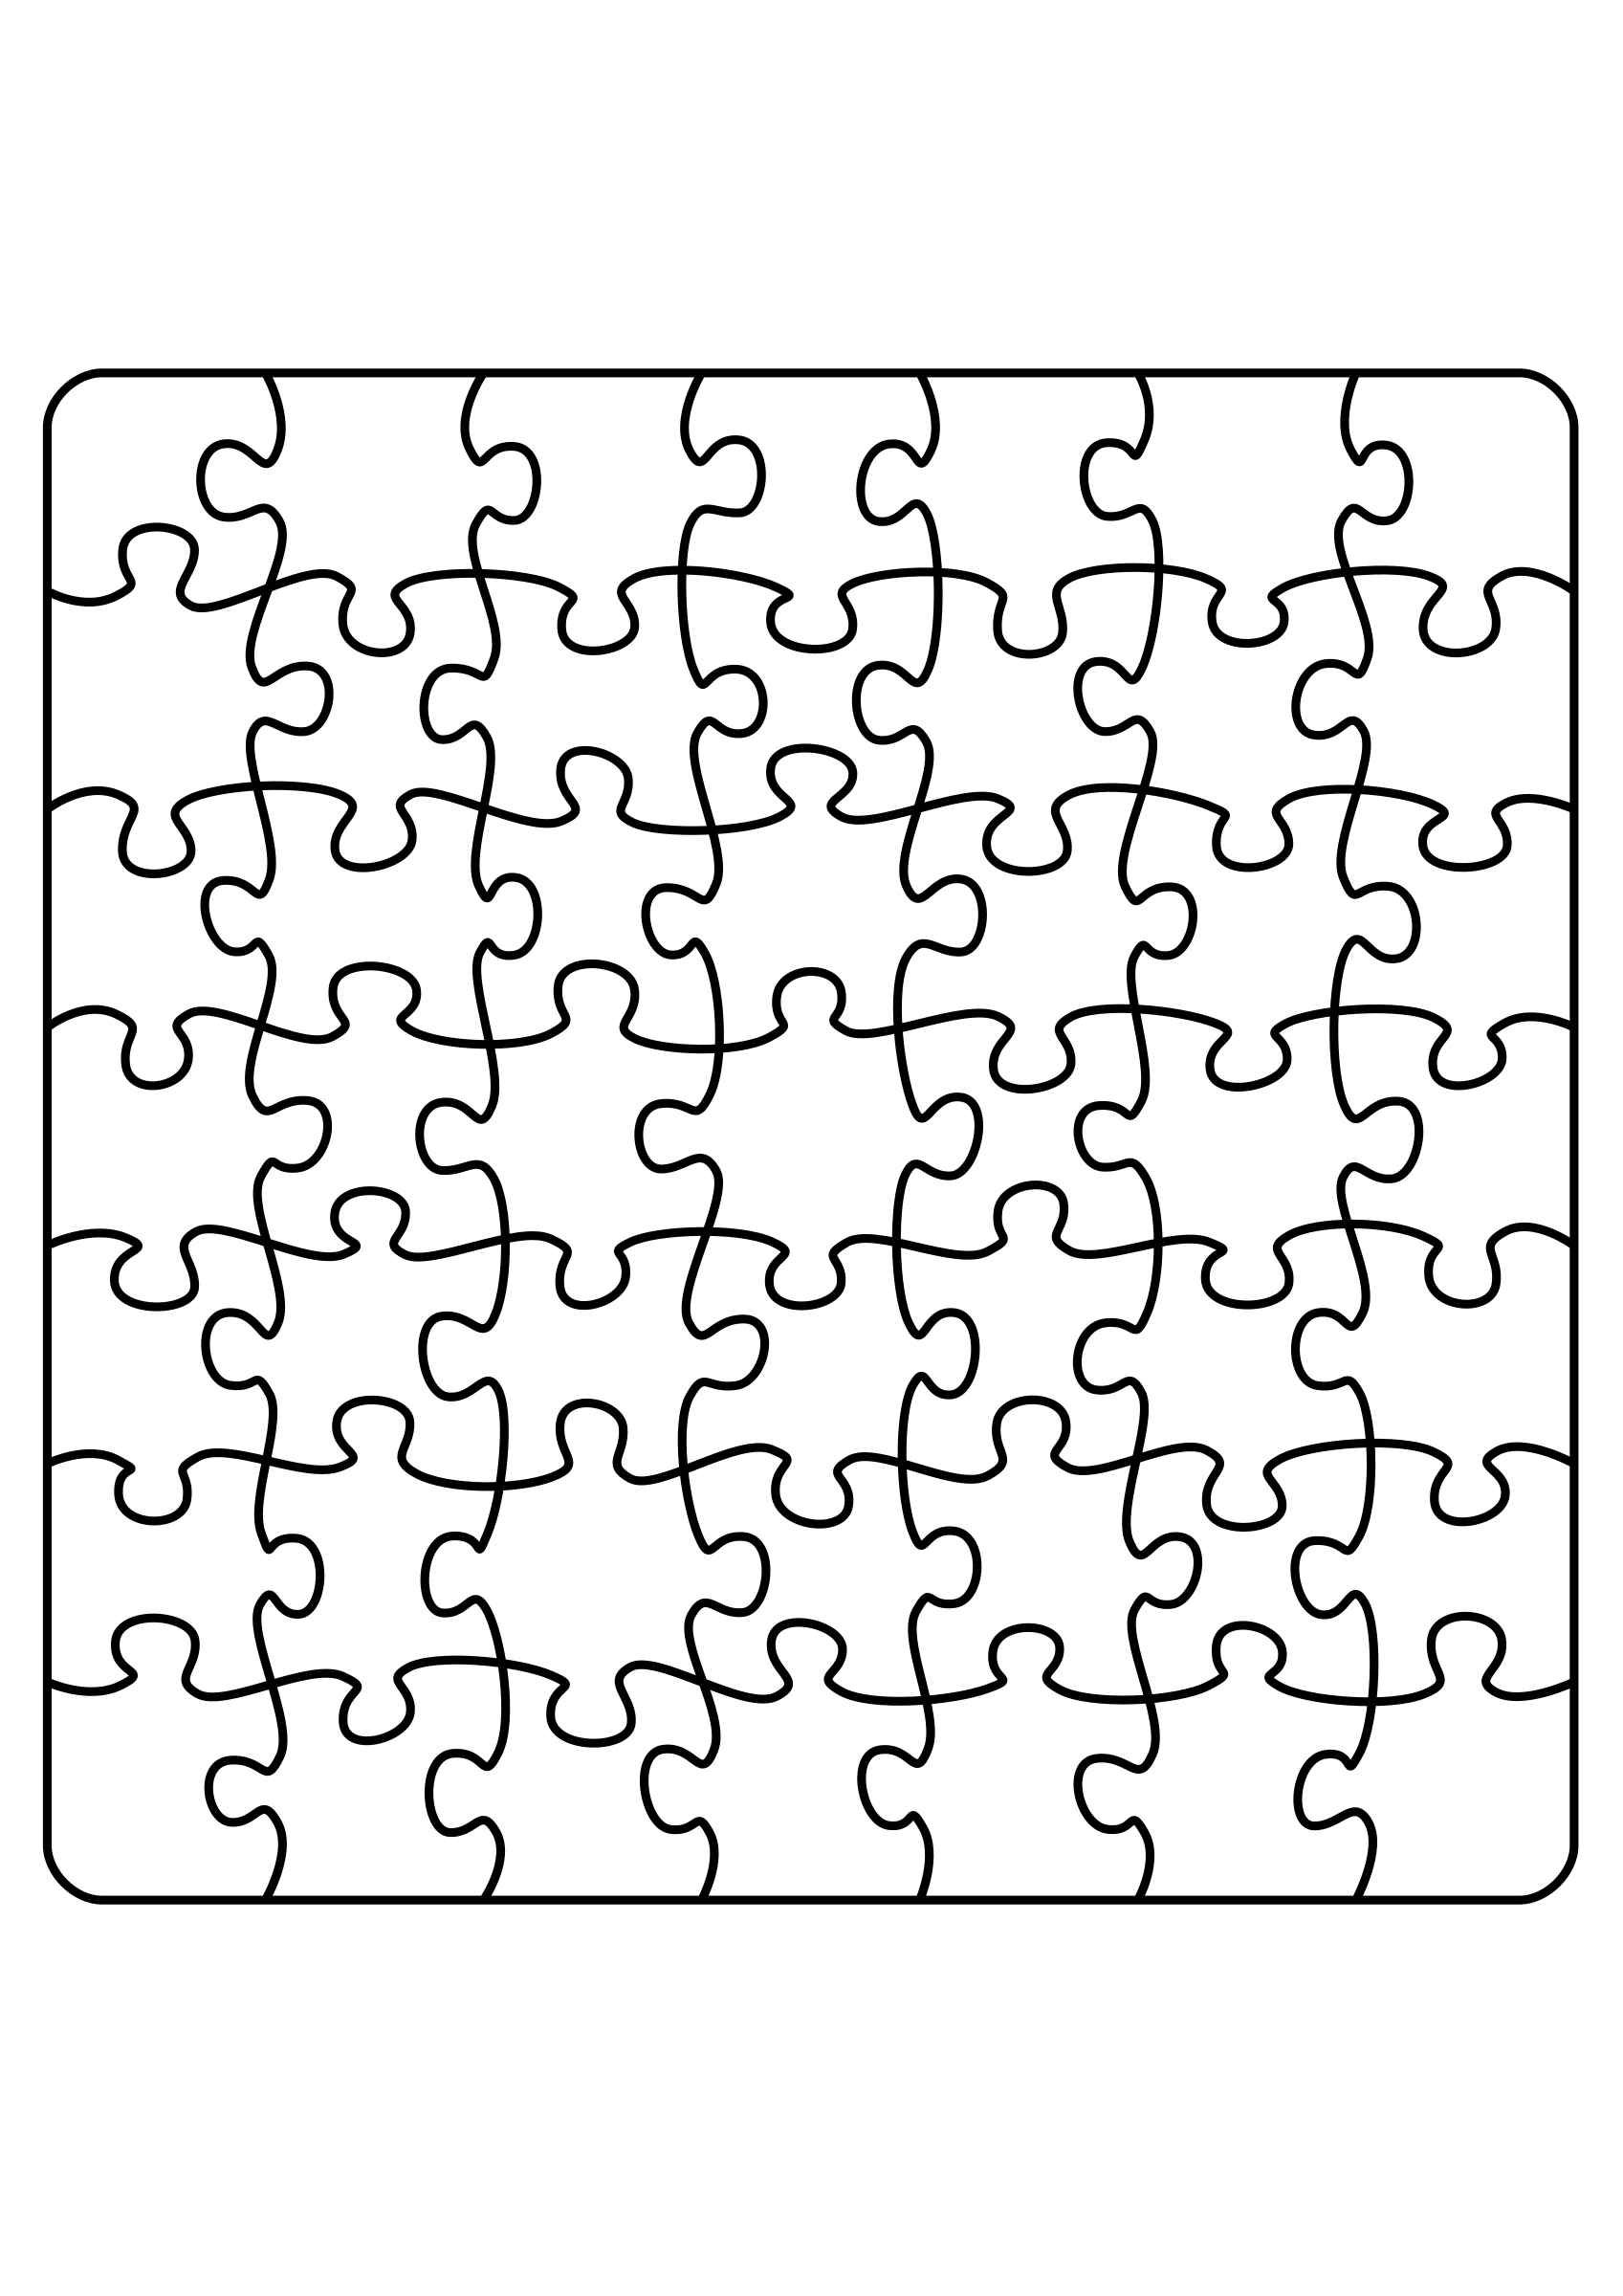 Jigsaw Puzzle Coloring Pages